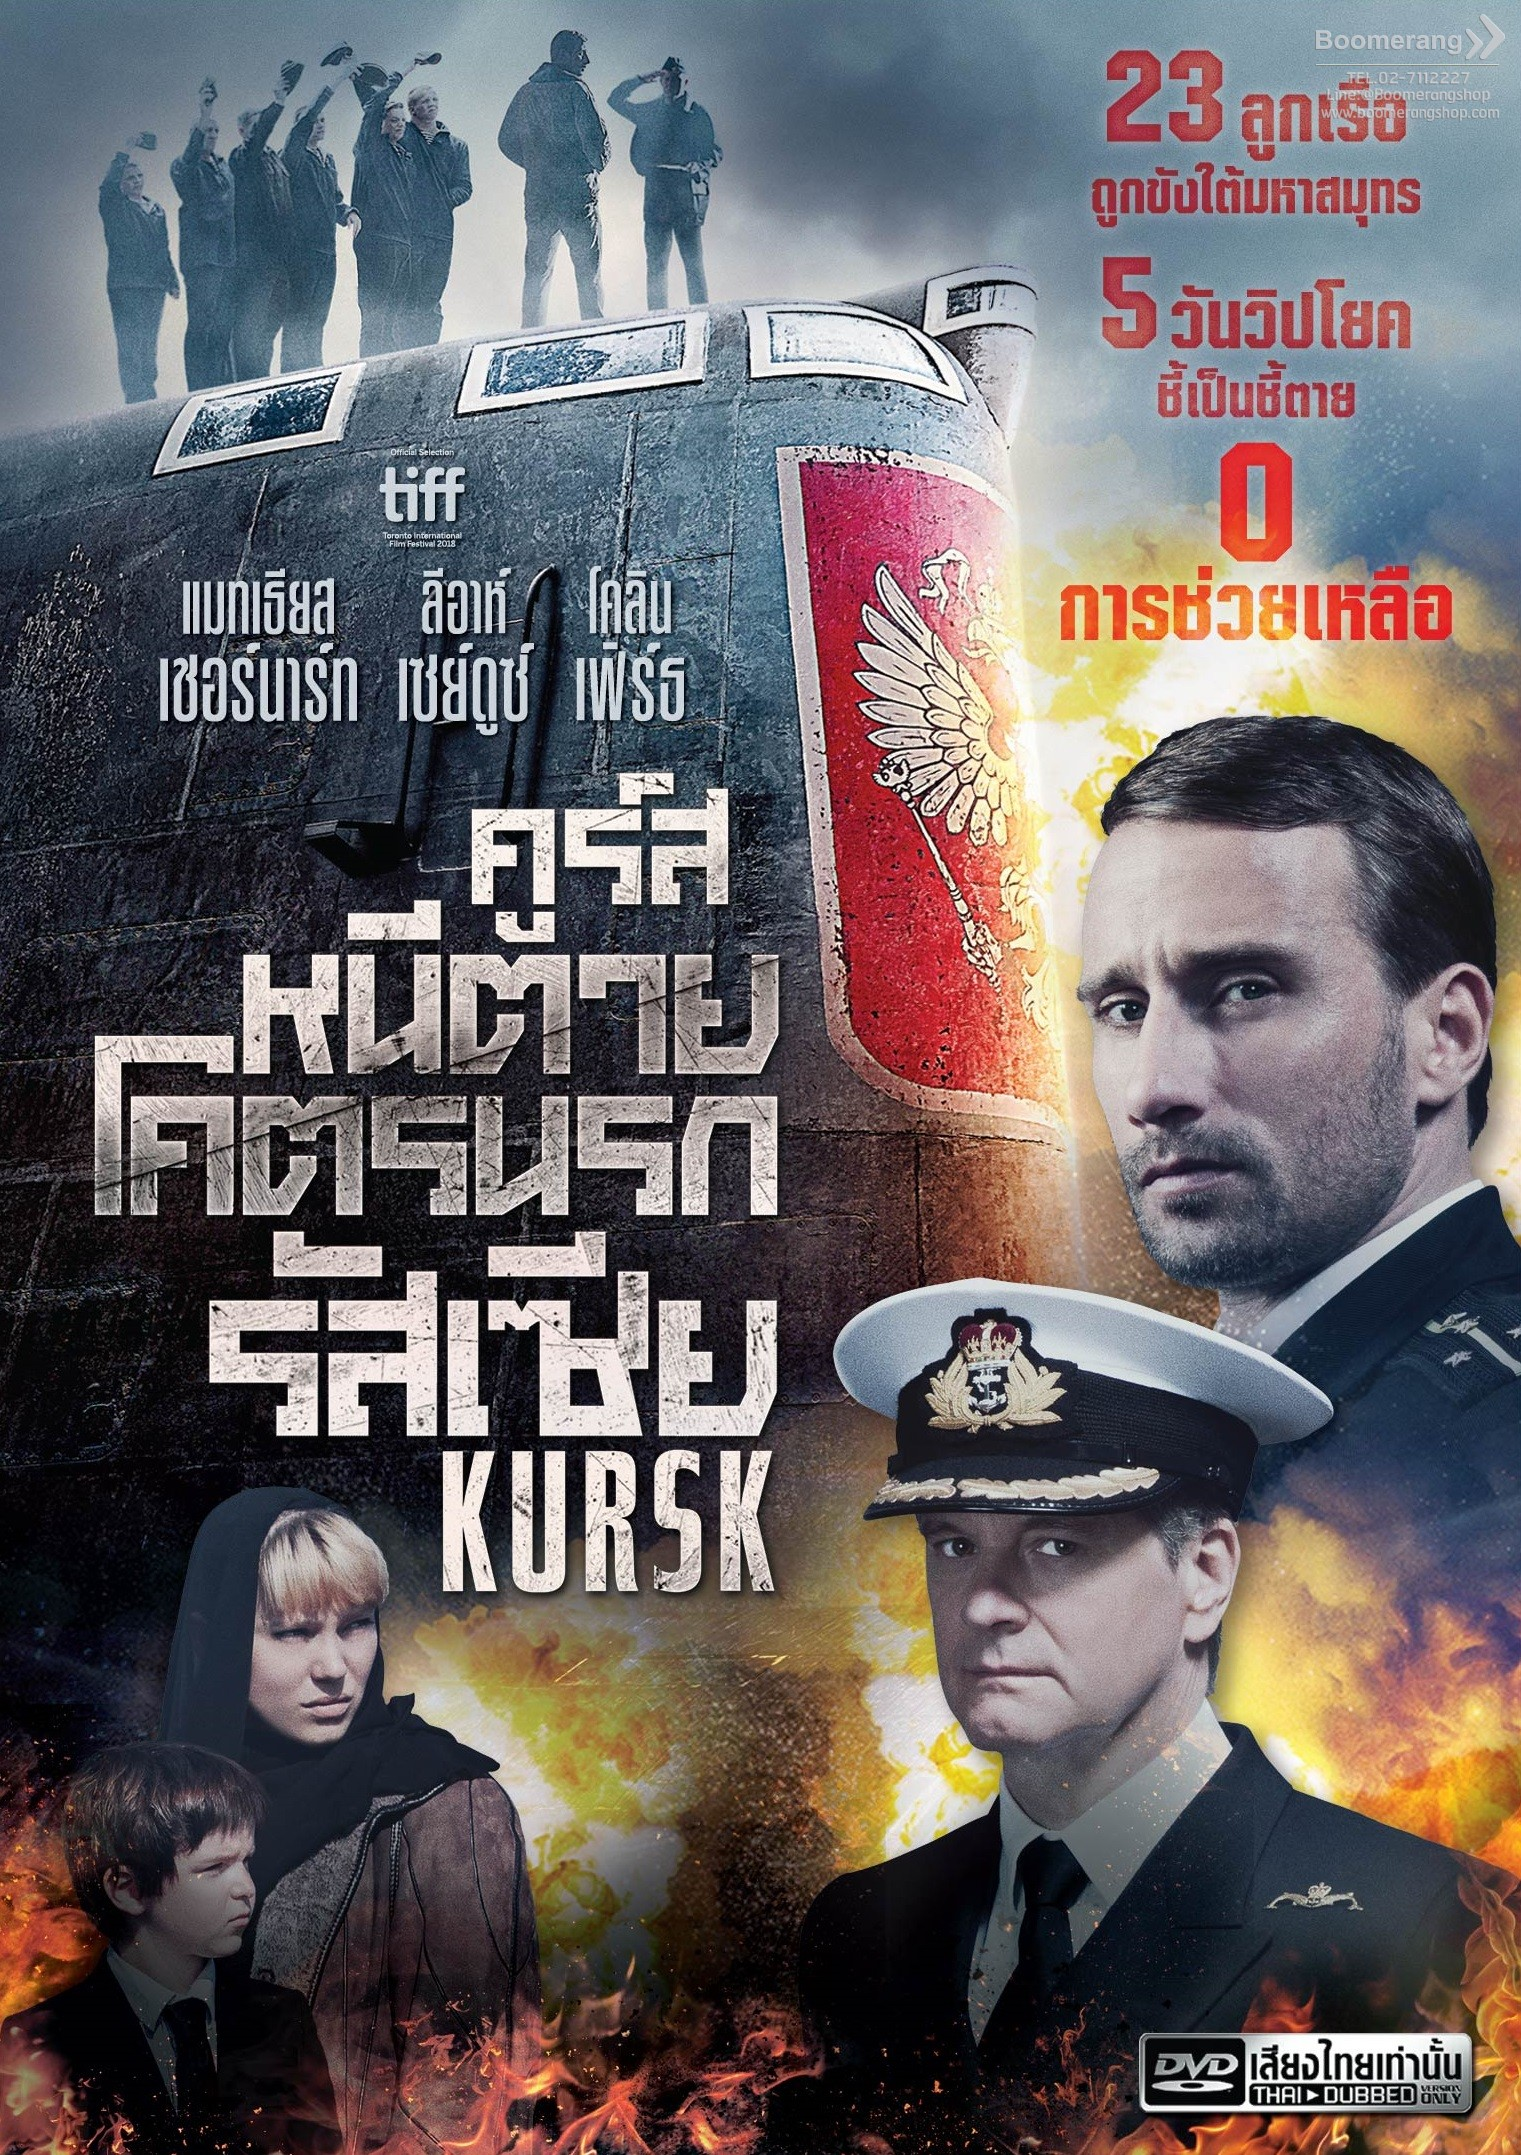 My Friends Told Me About You / Guide film kursk dvd